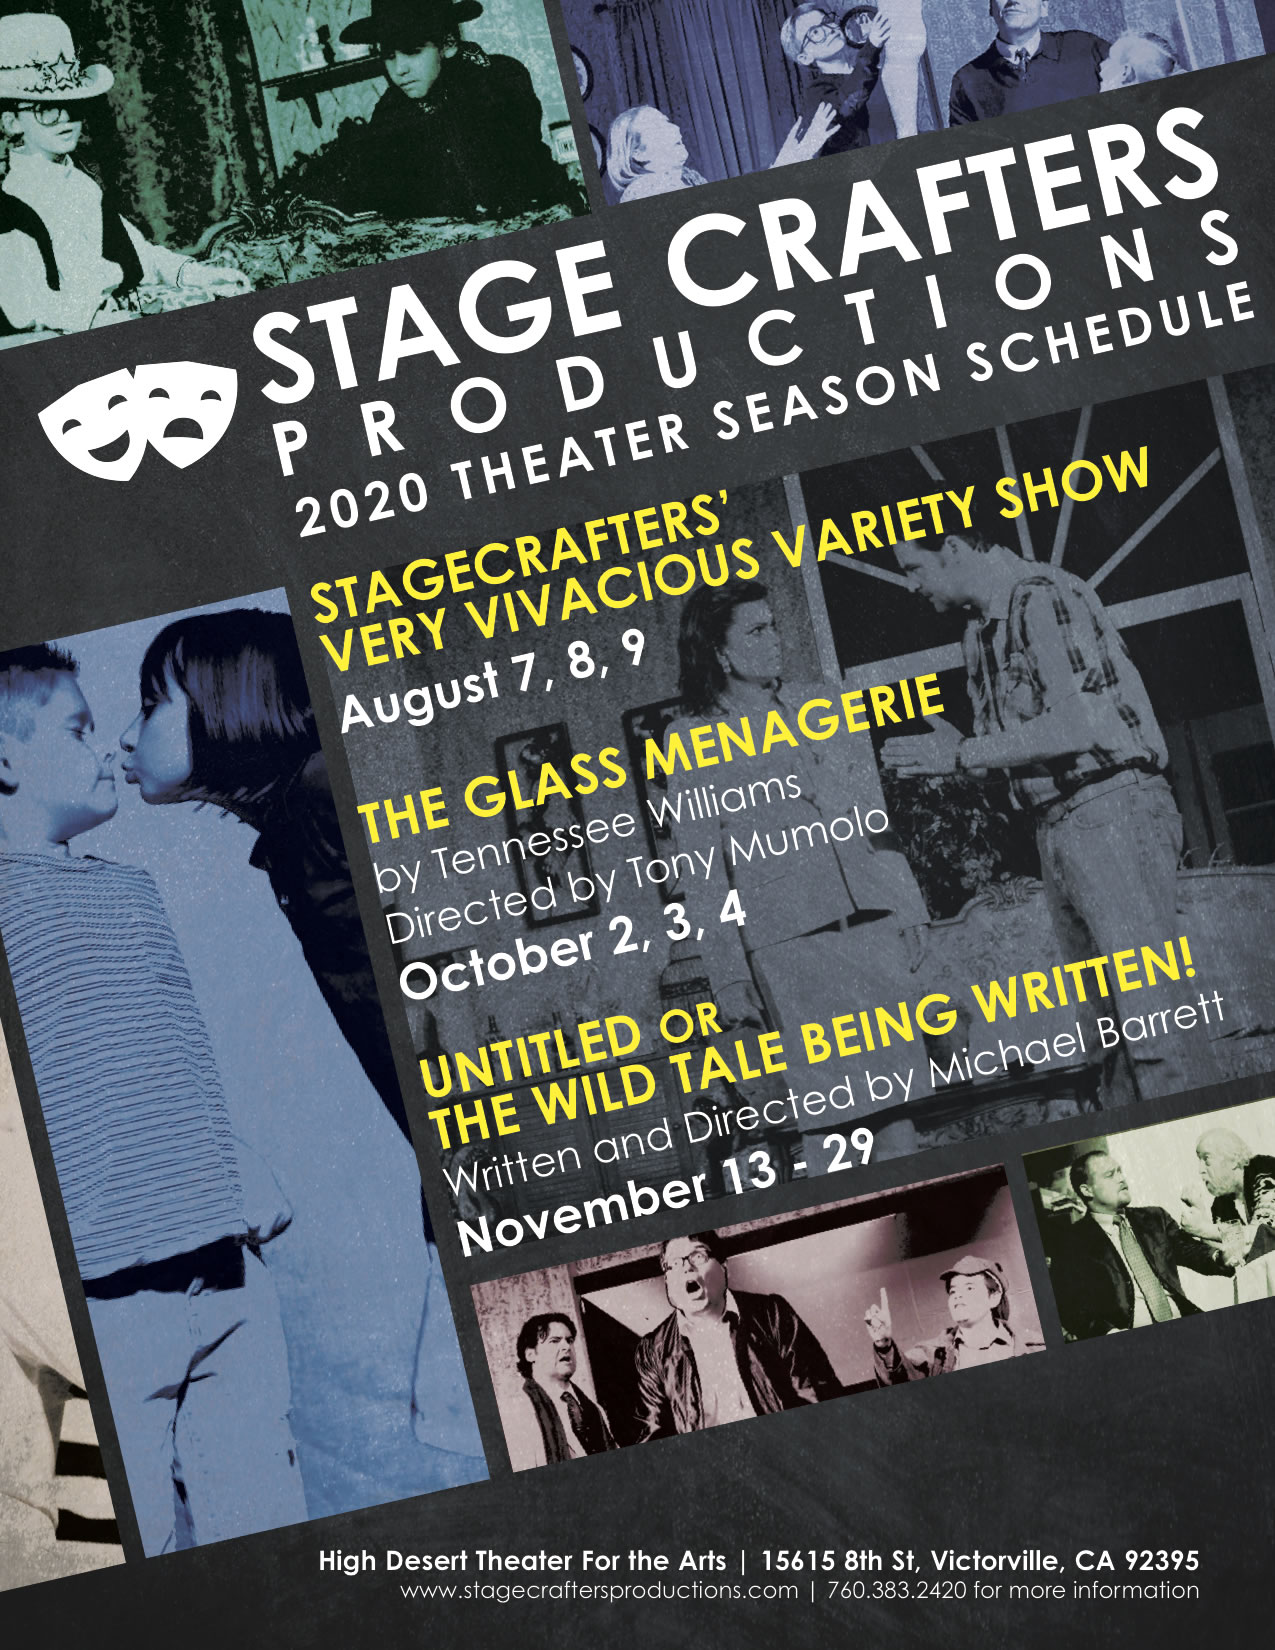 STAGE CRAFTERS 2020 Season